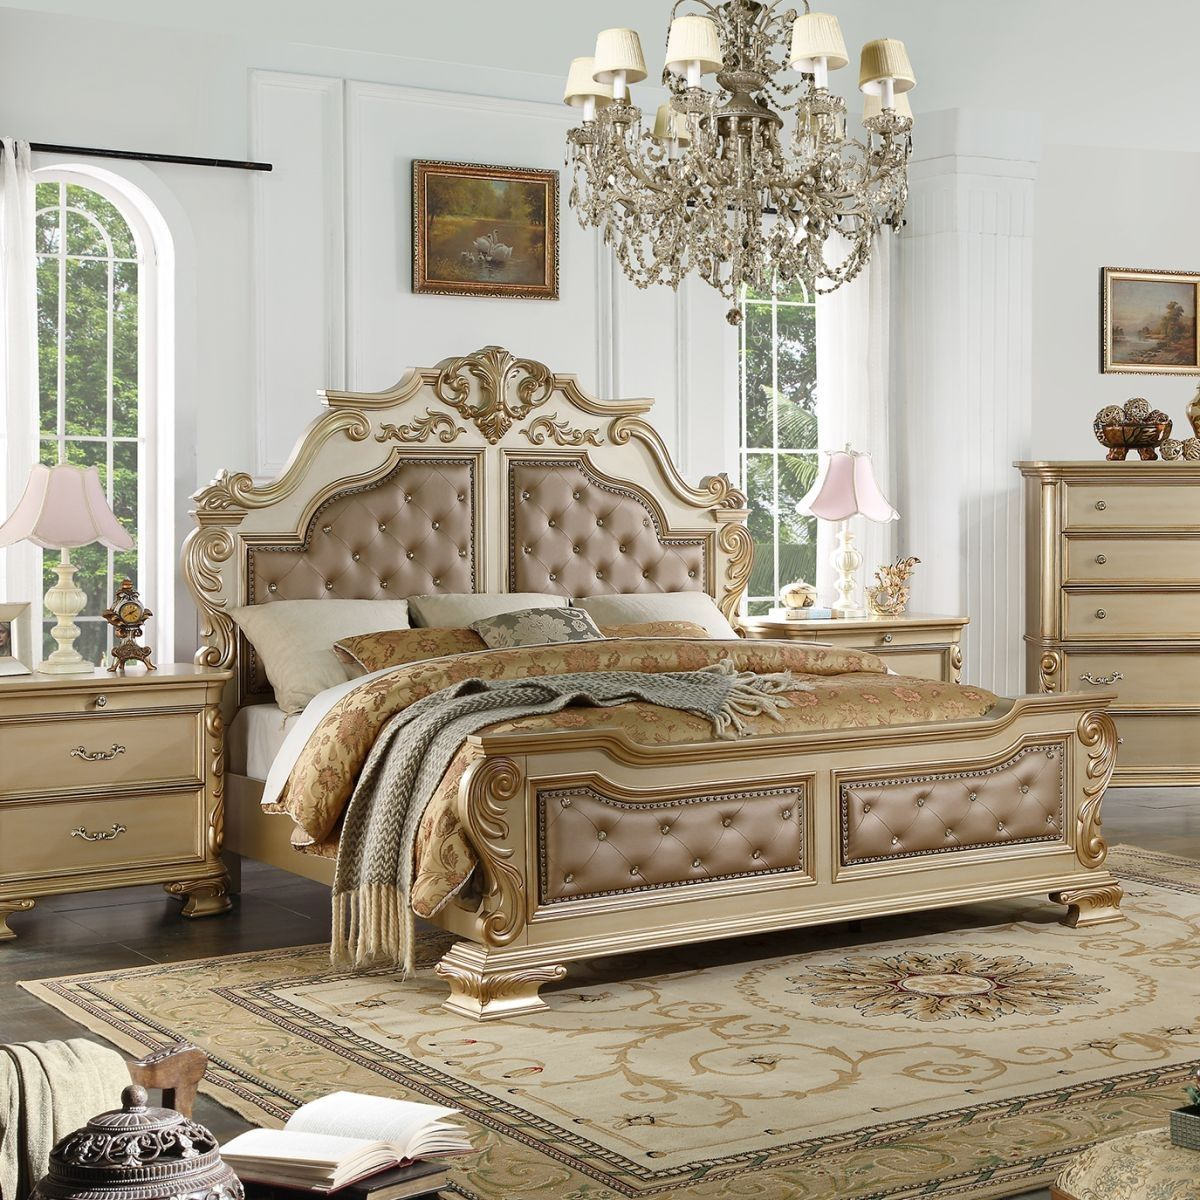 Badcock More Miranda Gold 5 Pc King Bedroom Bedroom Set